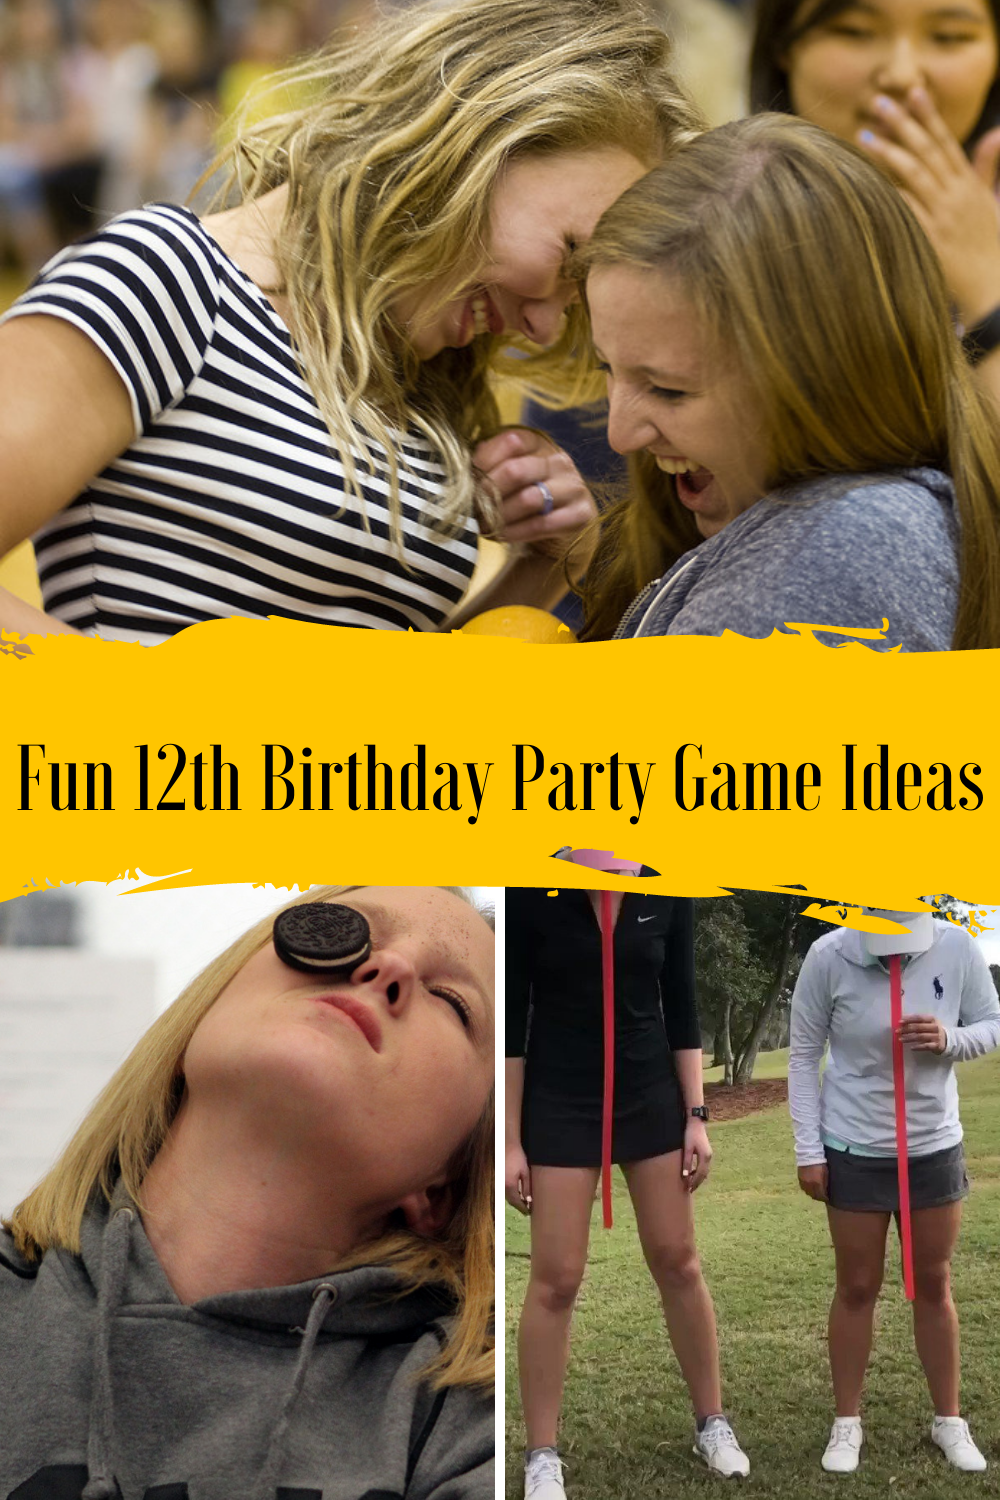 12th Birthday Game Ideas for pretweens